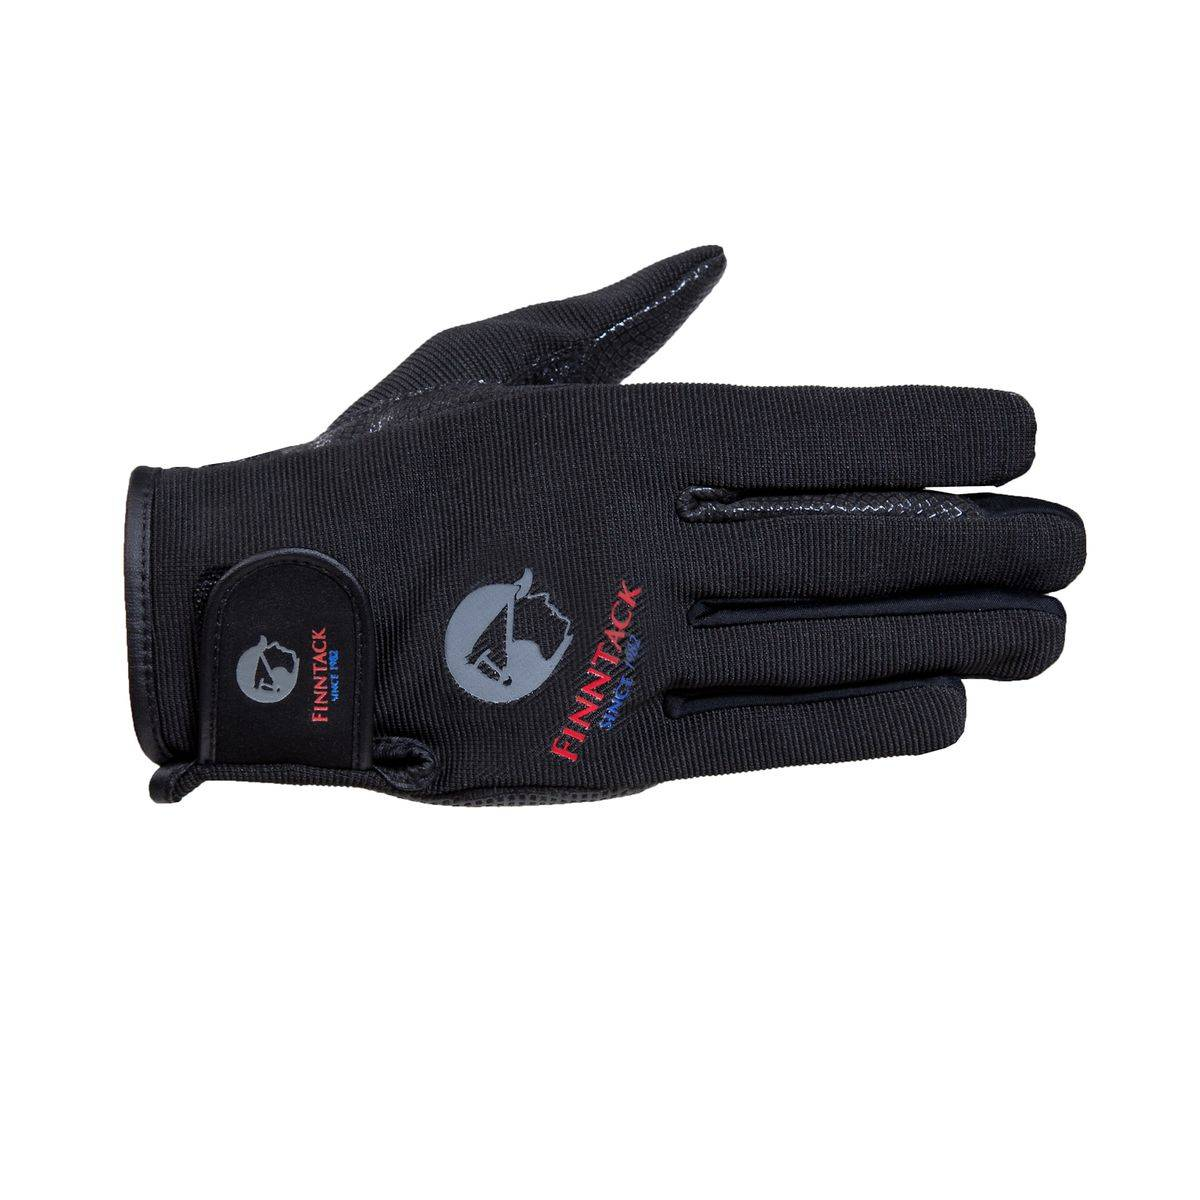 Finn-Tack Summer Racing Gloves - Adult